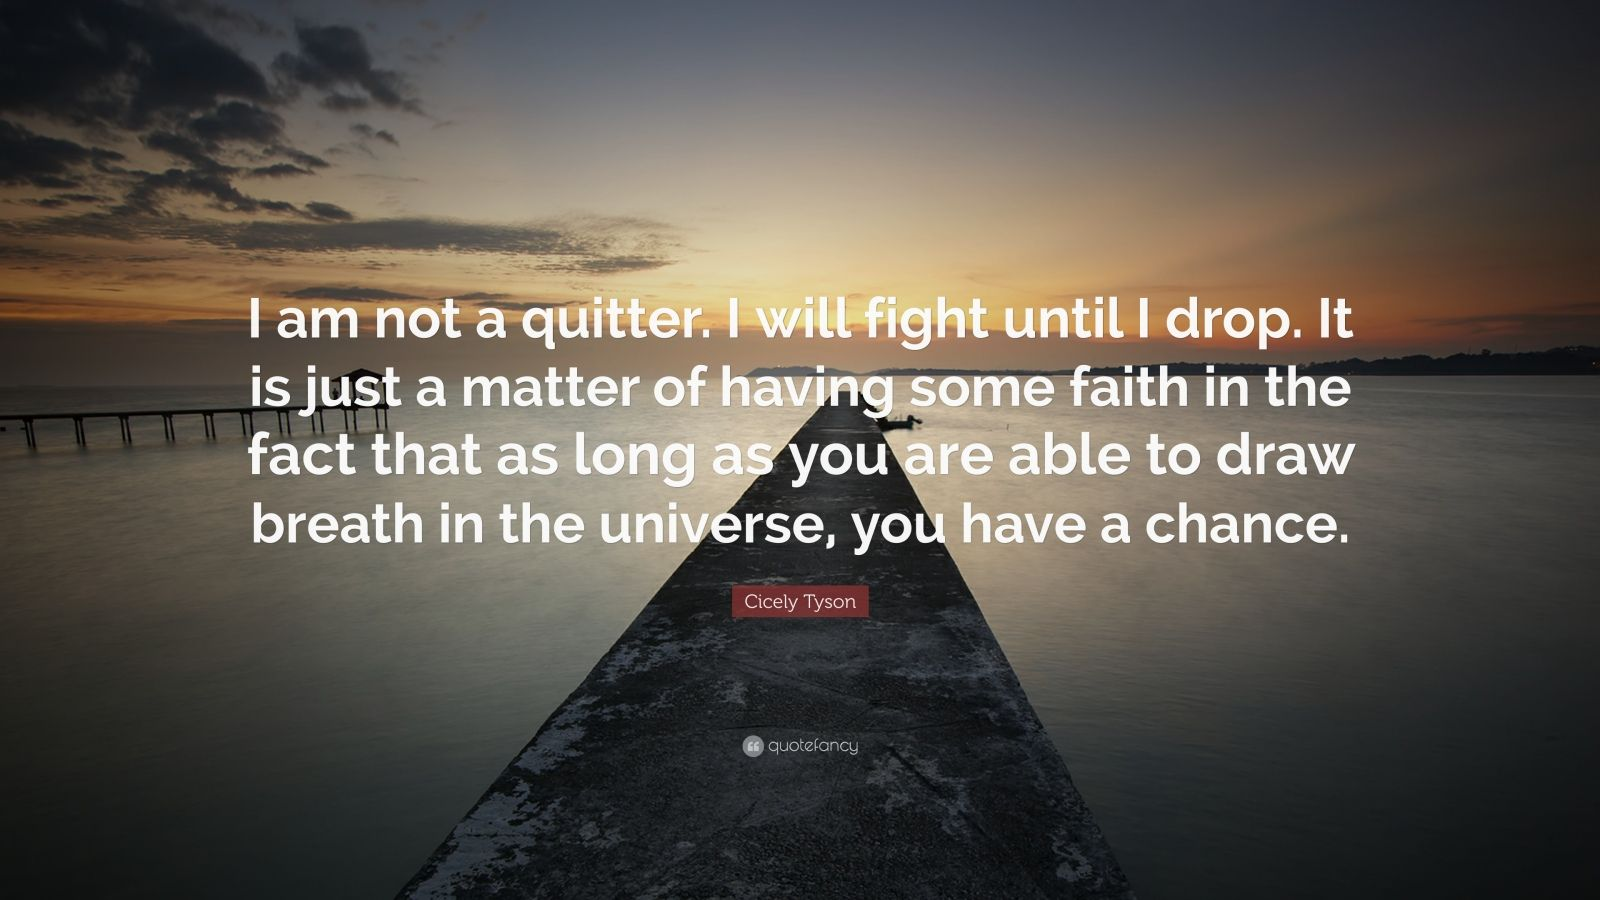 """Cicely Tyson Quote: """"I am not a quitter. I will fight until I drop. It is just a matter of having some faith in the fact that as long as you are able to draw breath in the universe, you have a chance."""""""